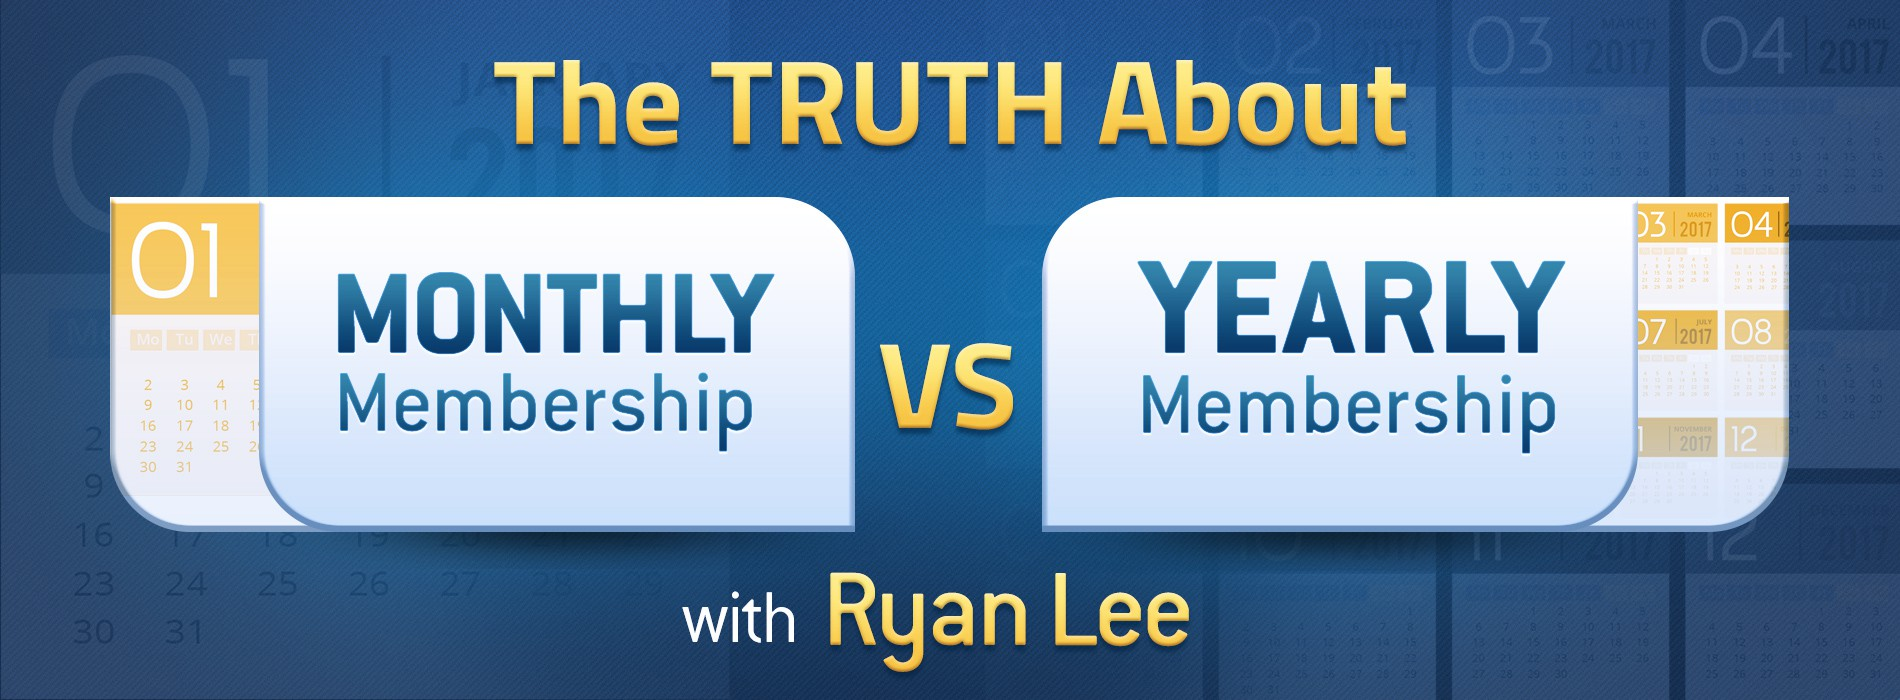 The TRUTH About Monthly vs. Yearly Membership with Ryan Lee